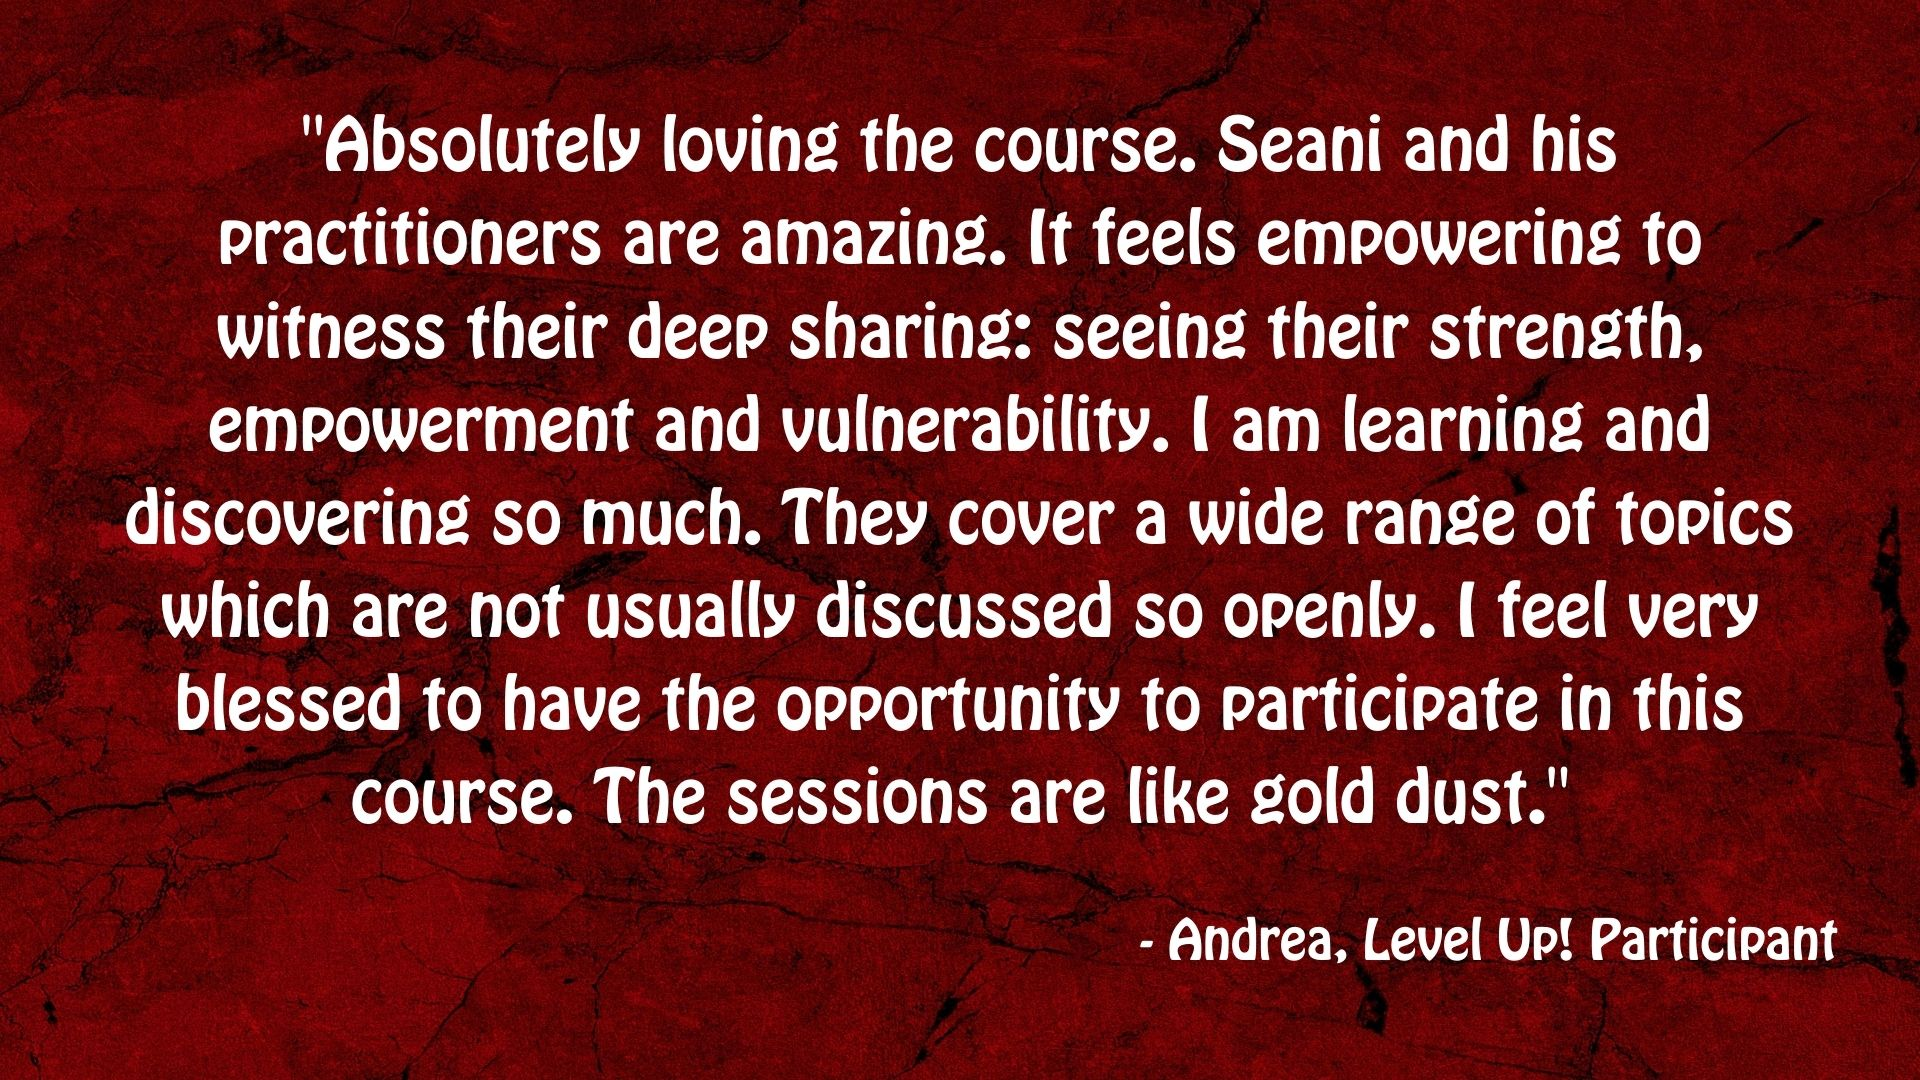 A testimonial from one of our Level Up participants